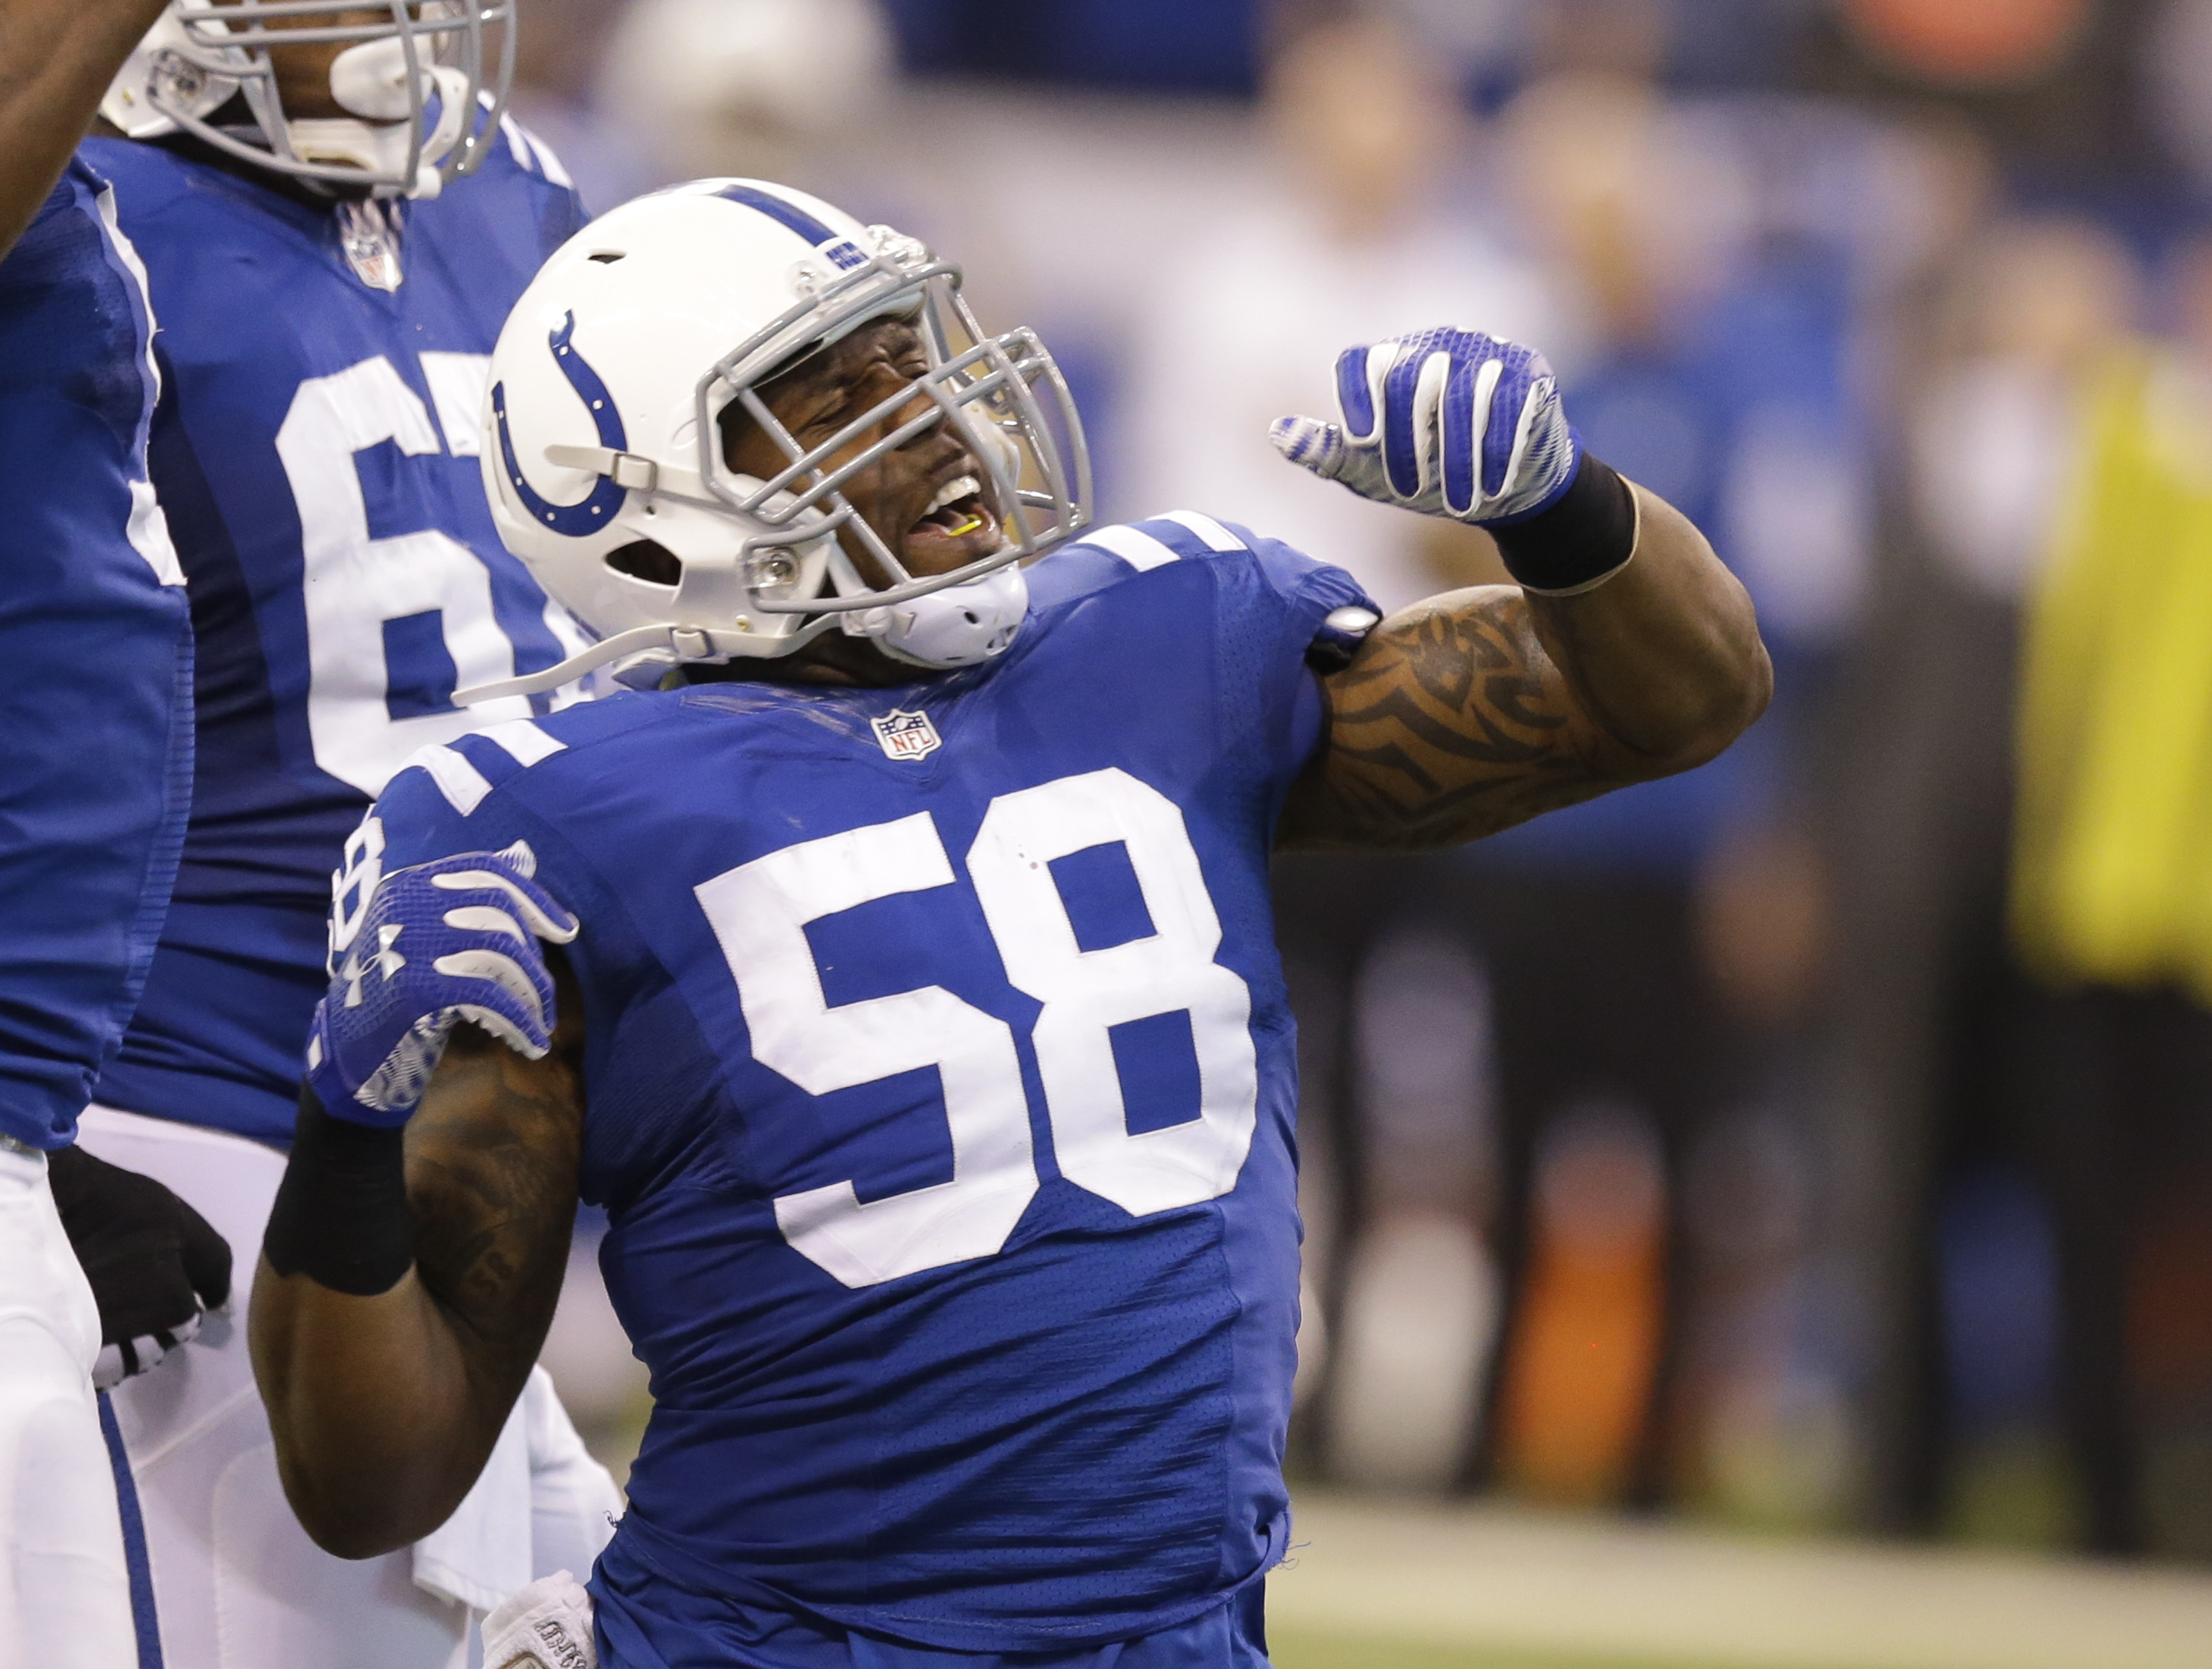 FILE - In this Dec. 20, 2015, file photo, Indianapolis Colts' Trent Cole (58) celebrates after a sack of Houston Texans quarterback T.J. Yates during the first half of an NFL football game in Indianapolis.  The Colts put Cole on injured reserve Tuesday, S